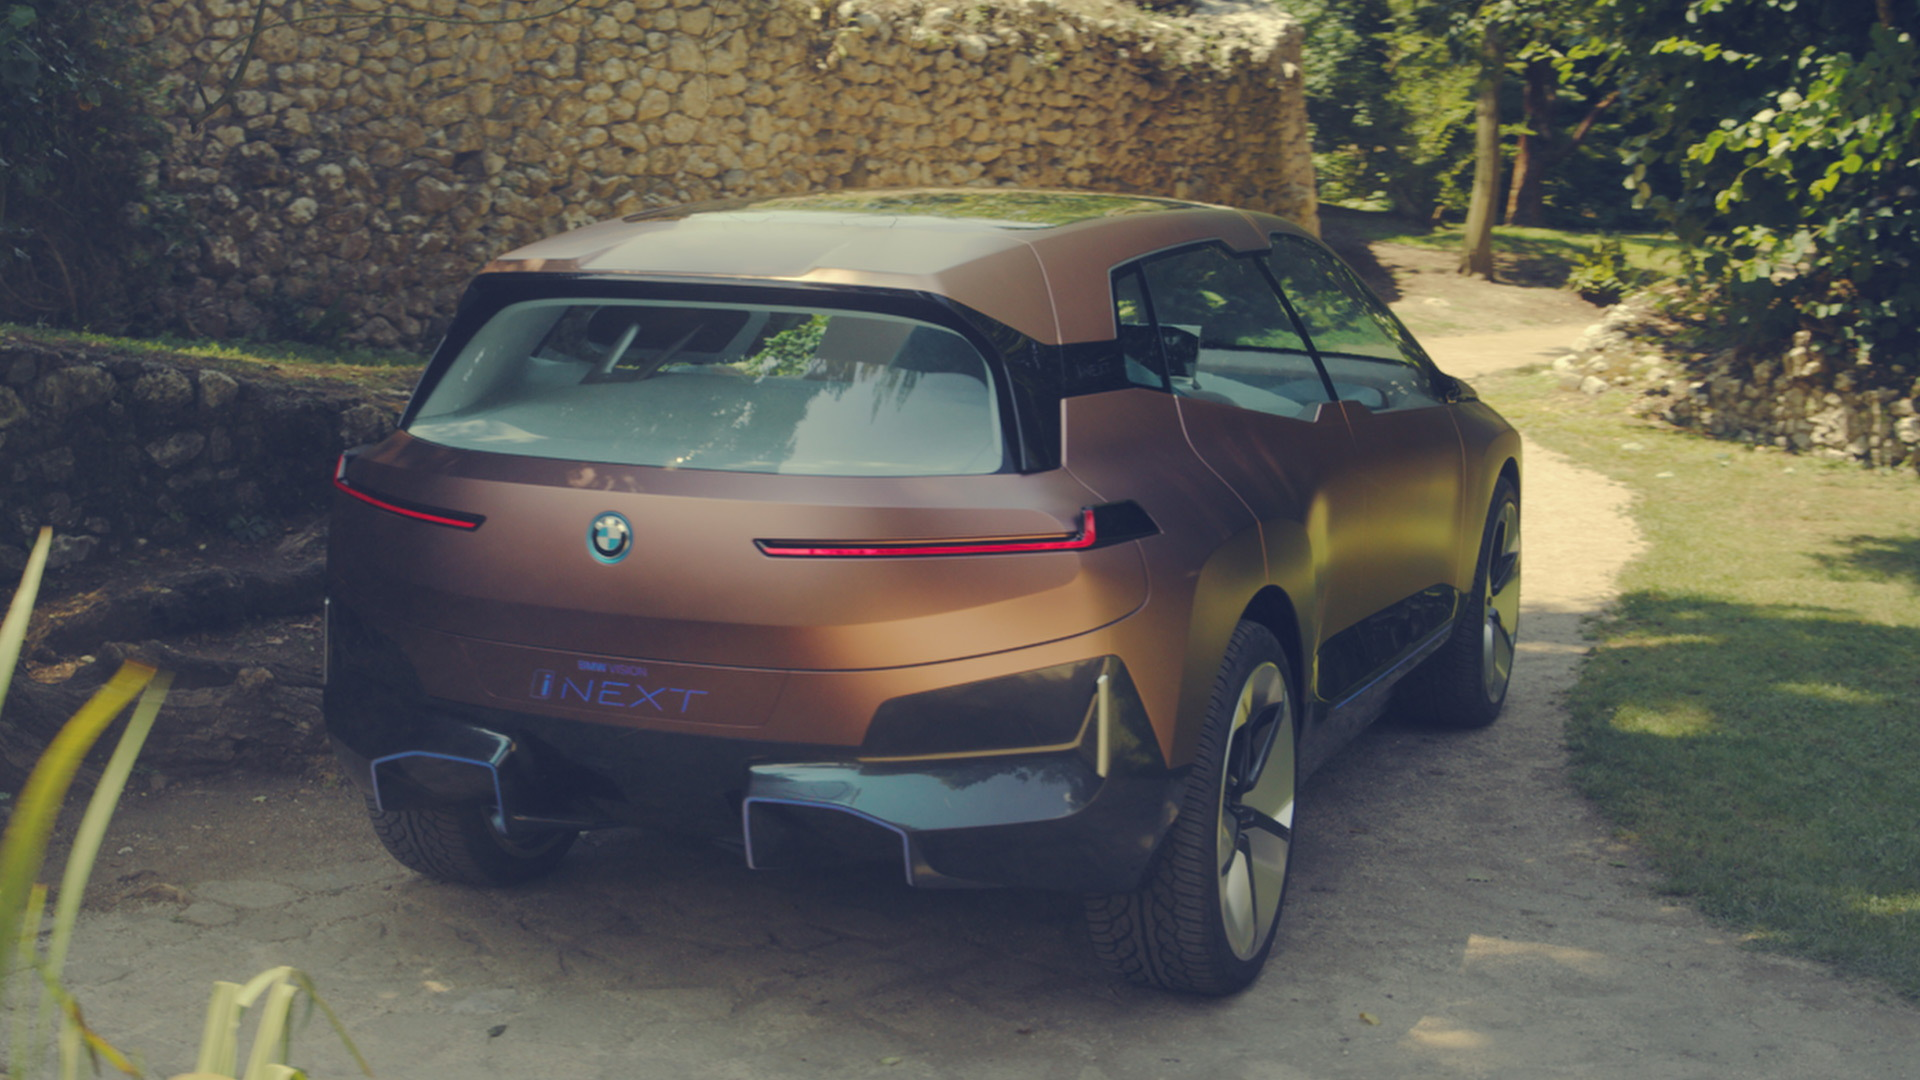 bmw vision inext previews electric self